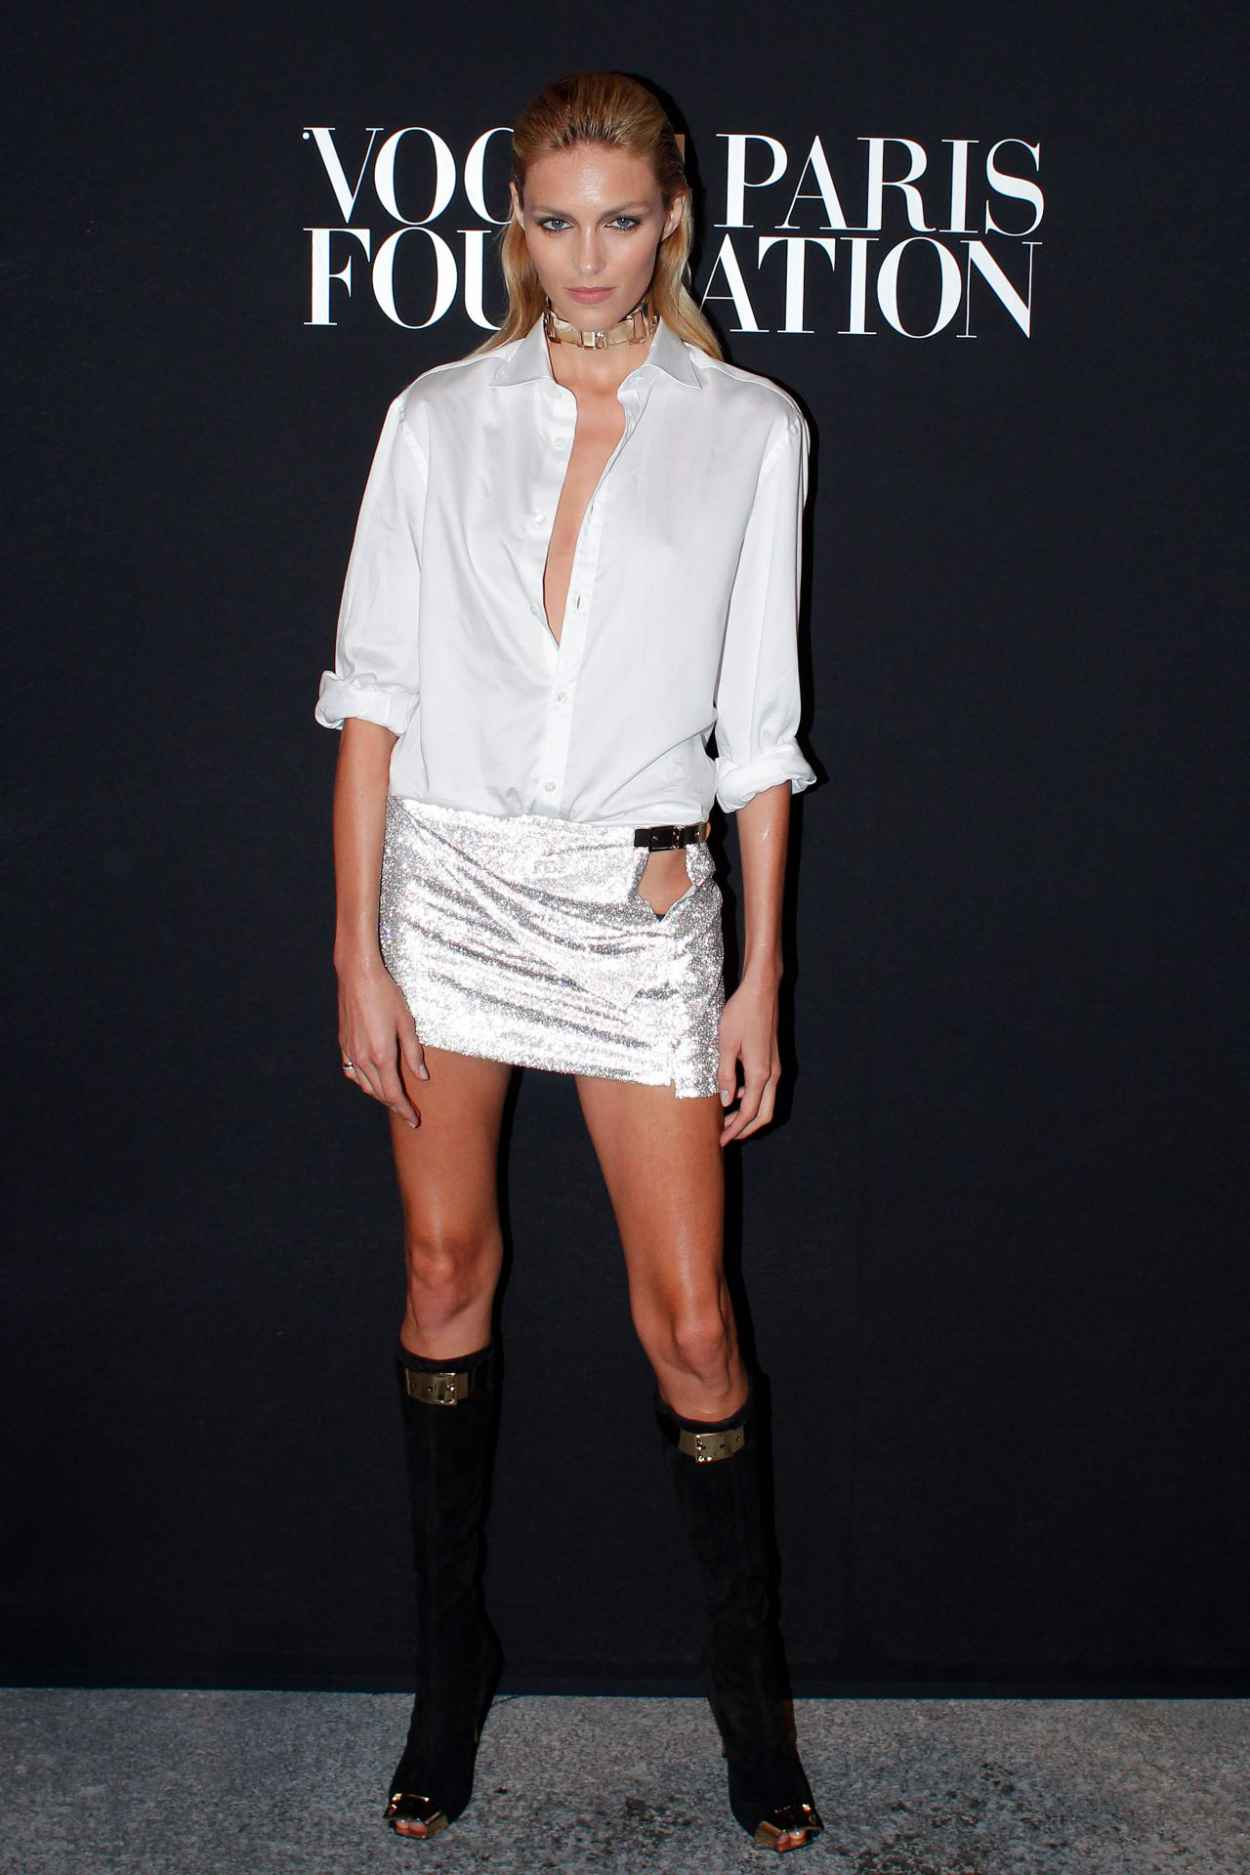 Anja Rubik at Vogue Foundation Gala - July 2015-1